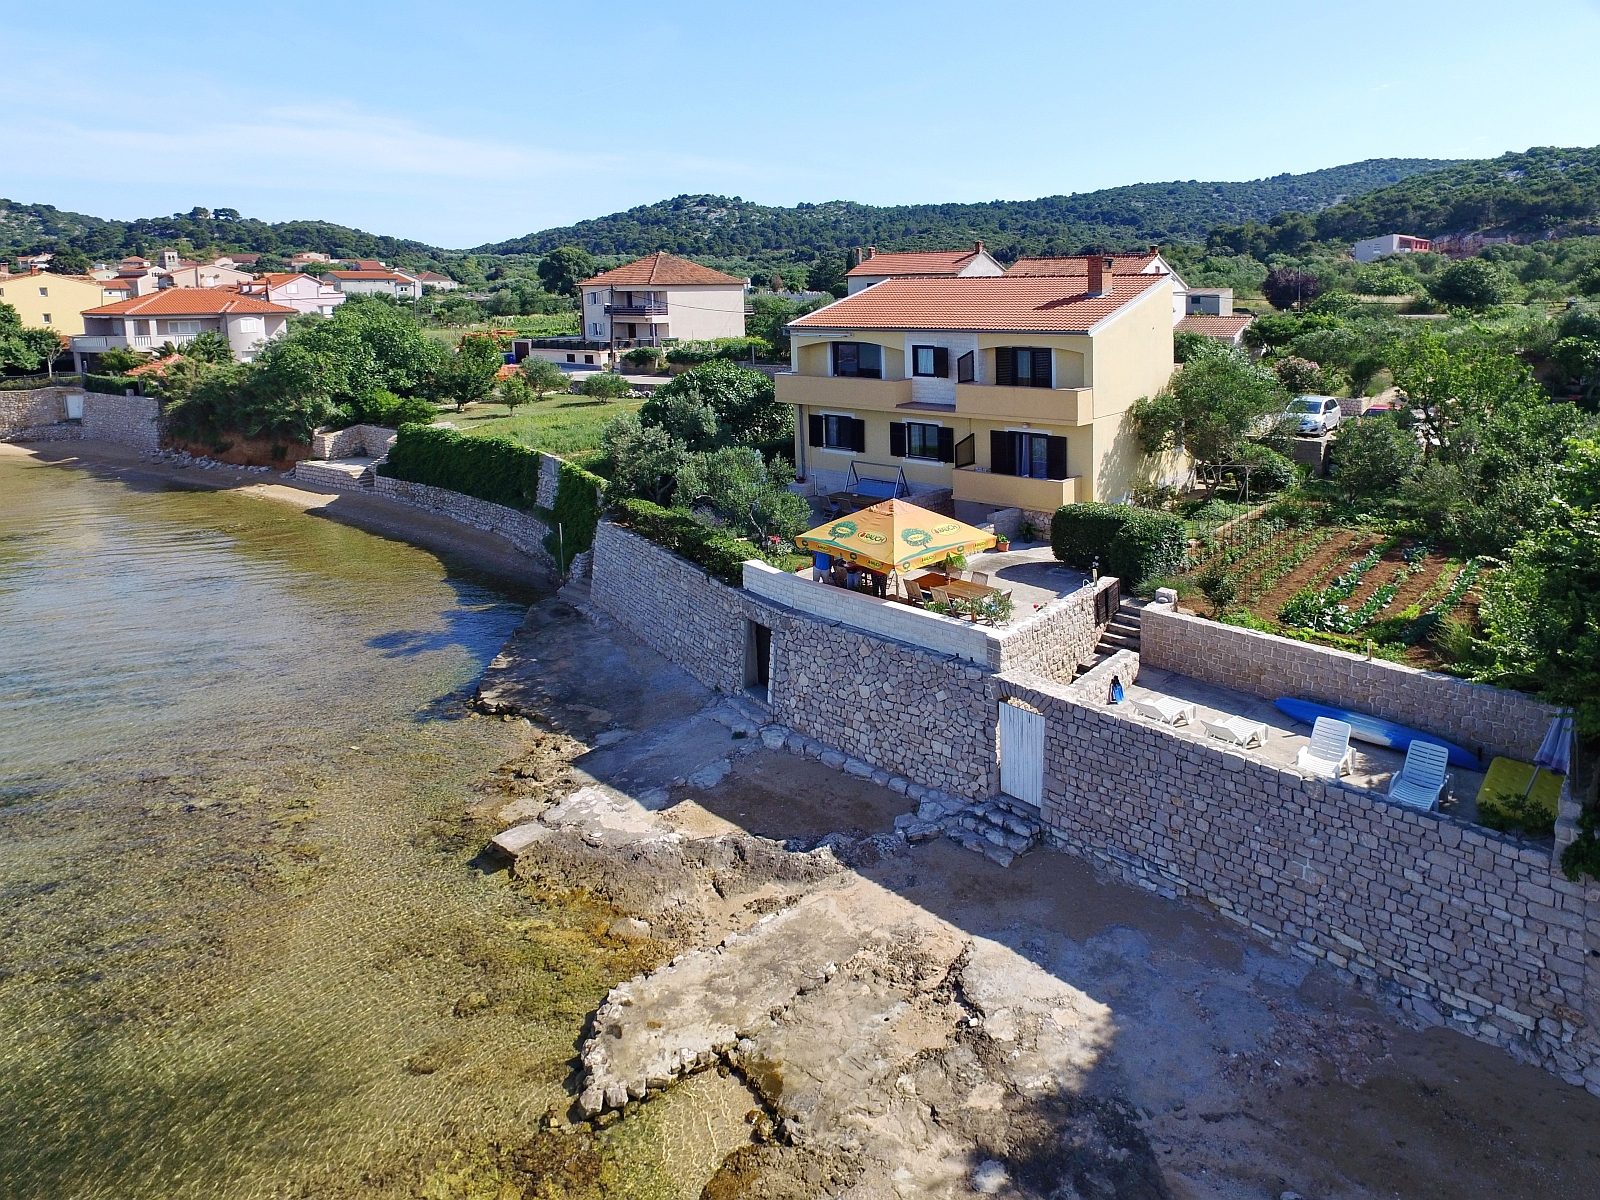 00220TKON - Tkon - Apartments Croatia